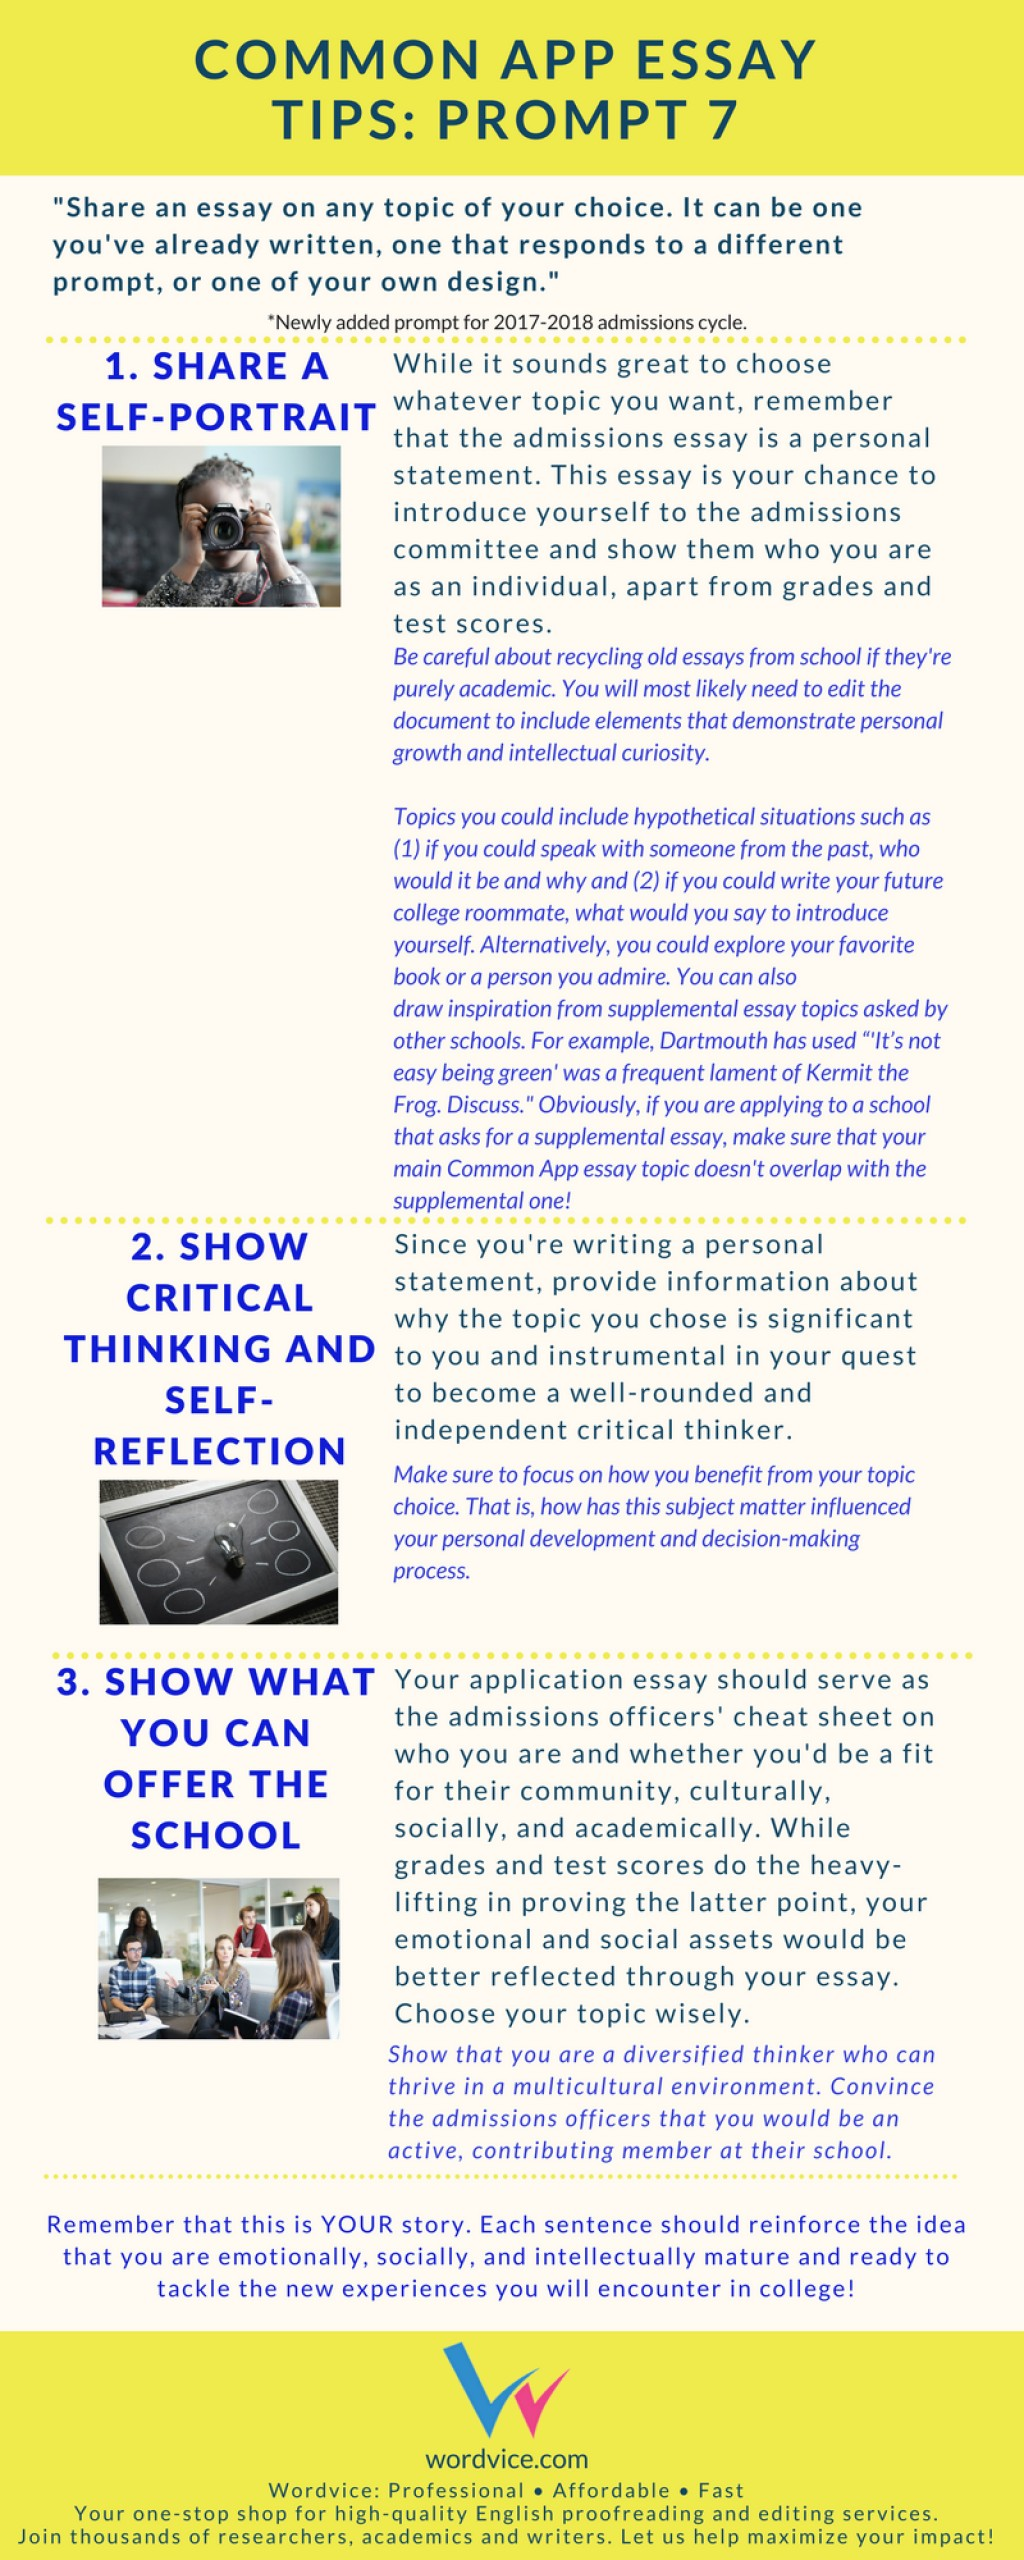 006 Common Application Essay Prompts App Brainstormprompt Imposing 2017 Examples Prompt 6 2015 Large